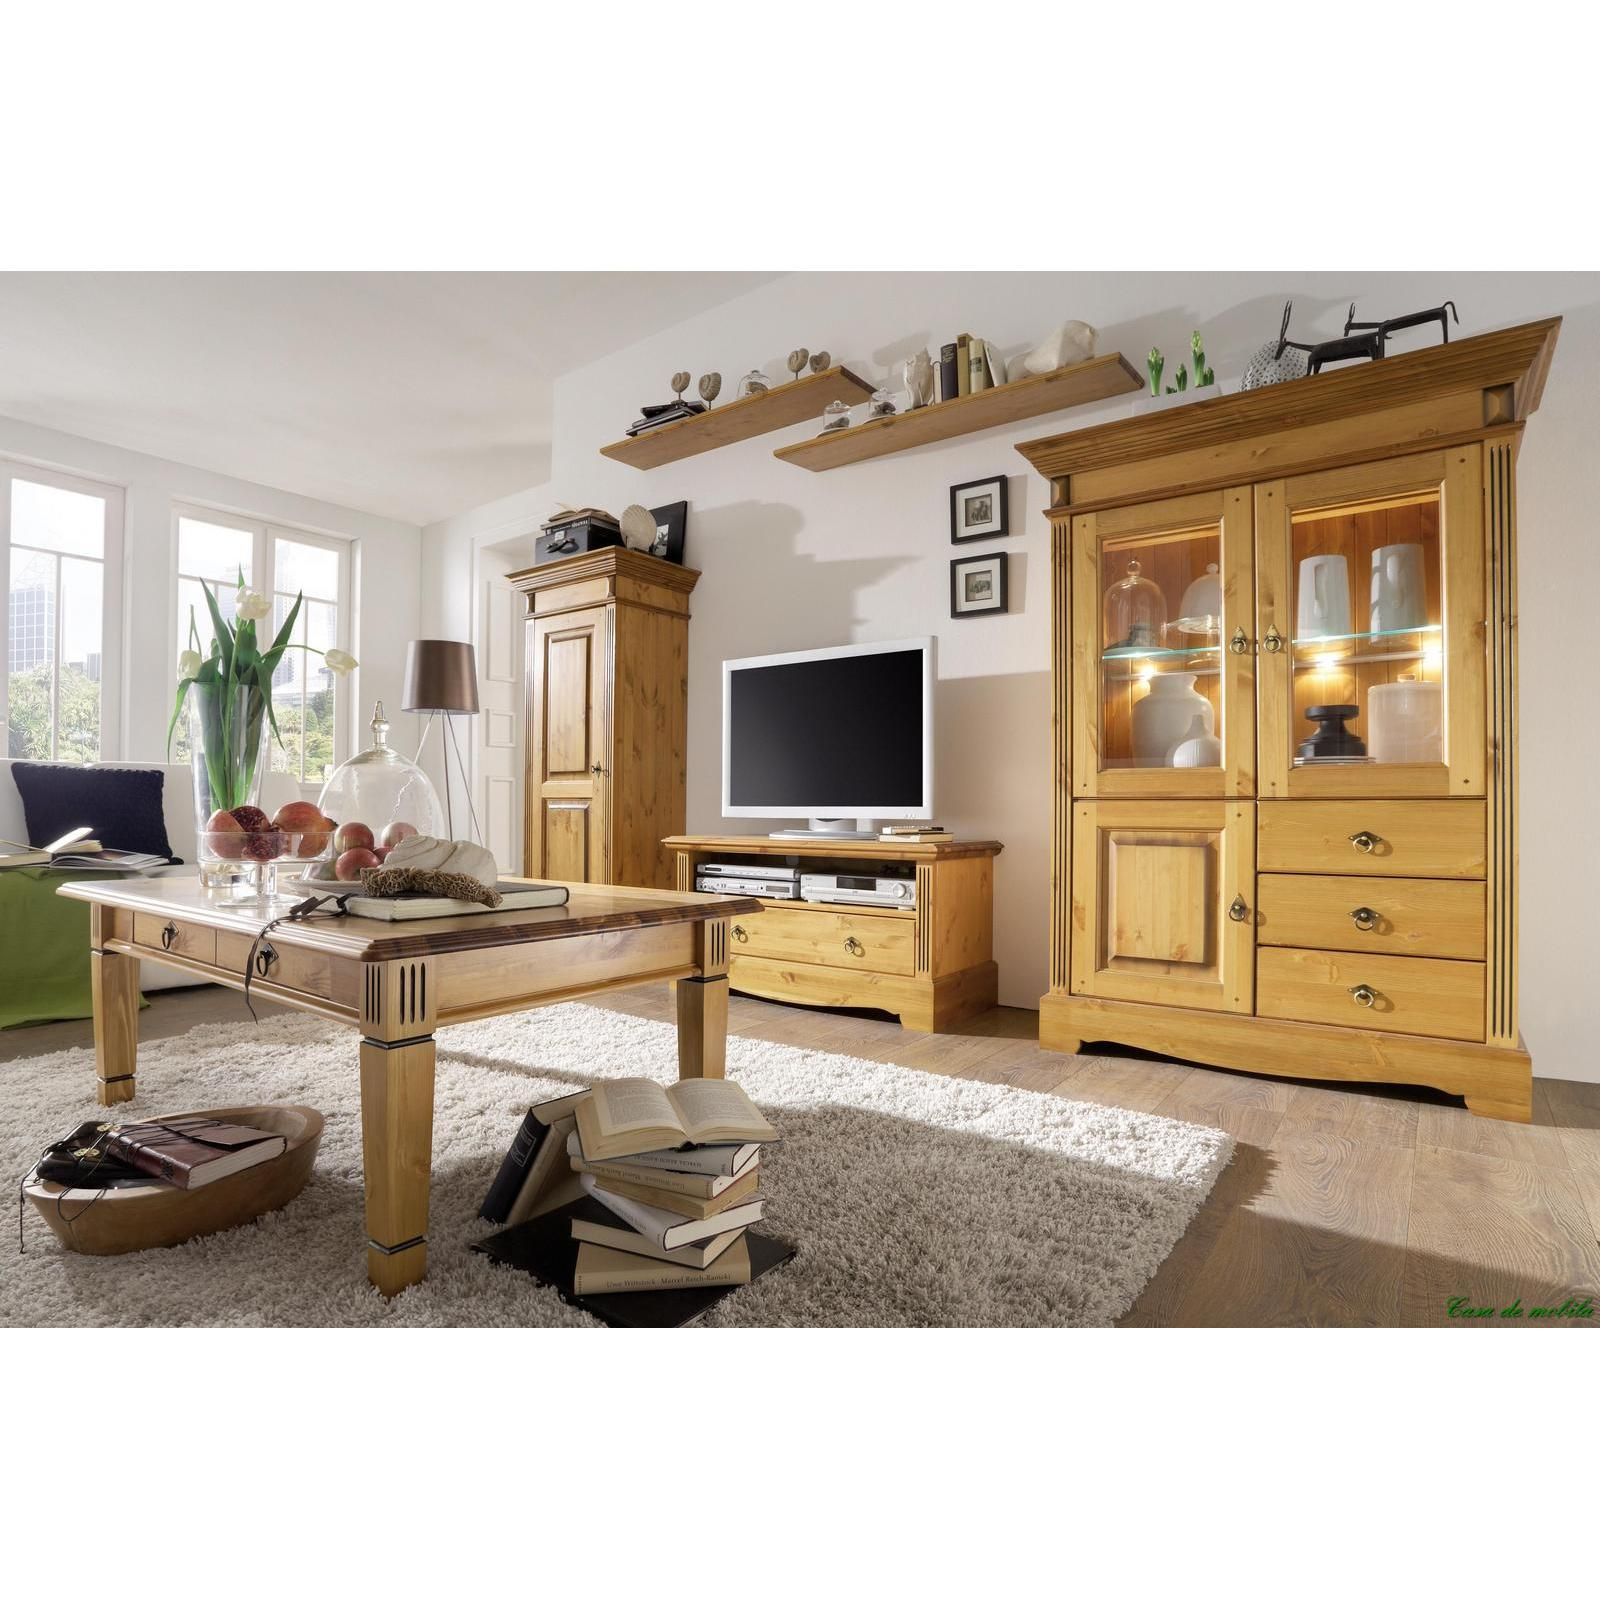 massivholz tv lowboard tv schrank holz kiefer massiv honig tv kommode goldbraun. Black Bedroom Furniture Sets. Home Design Ideas